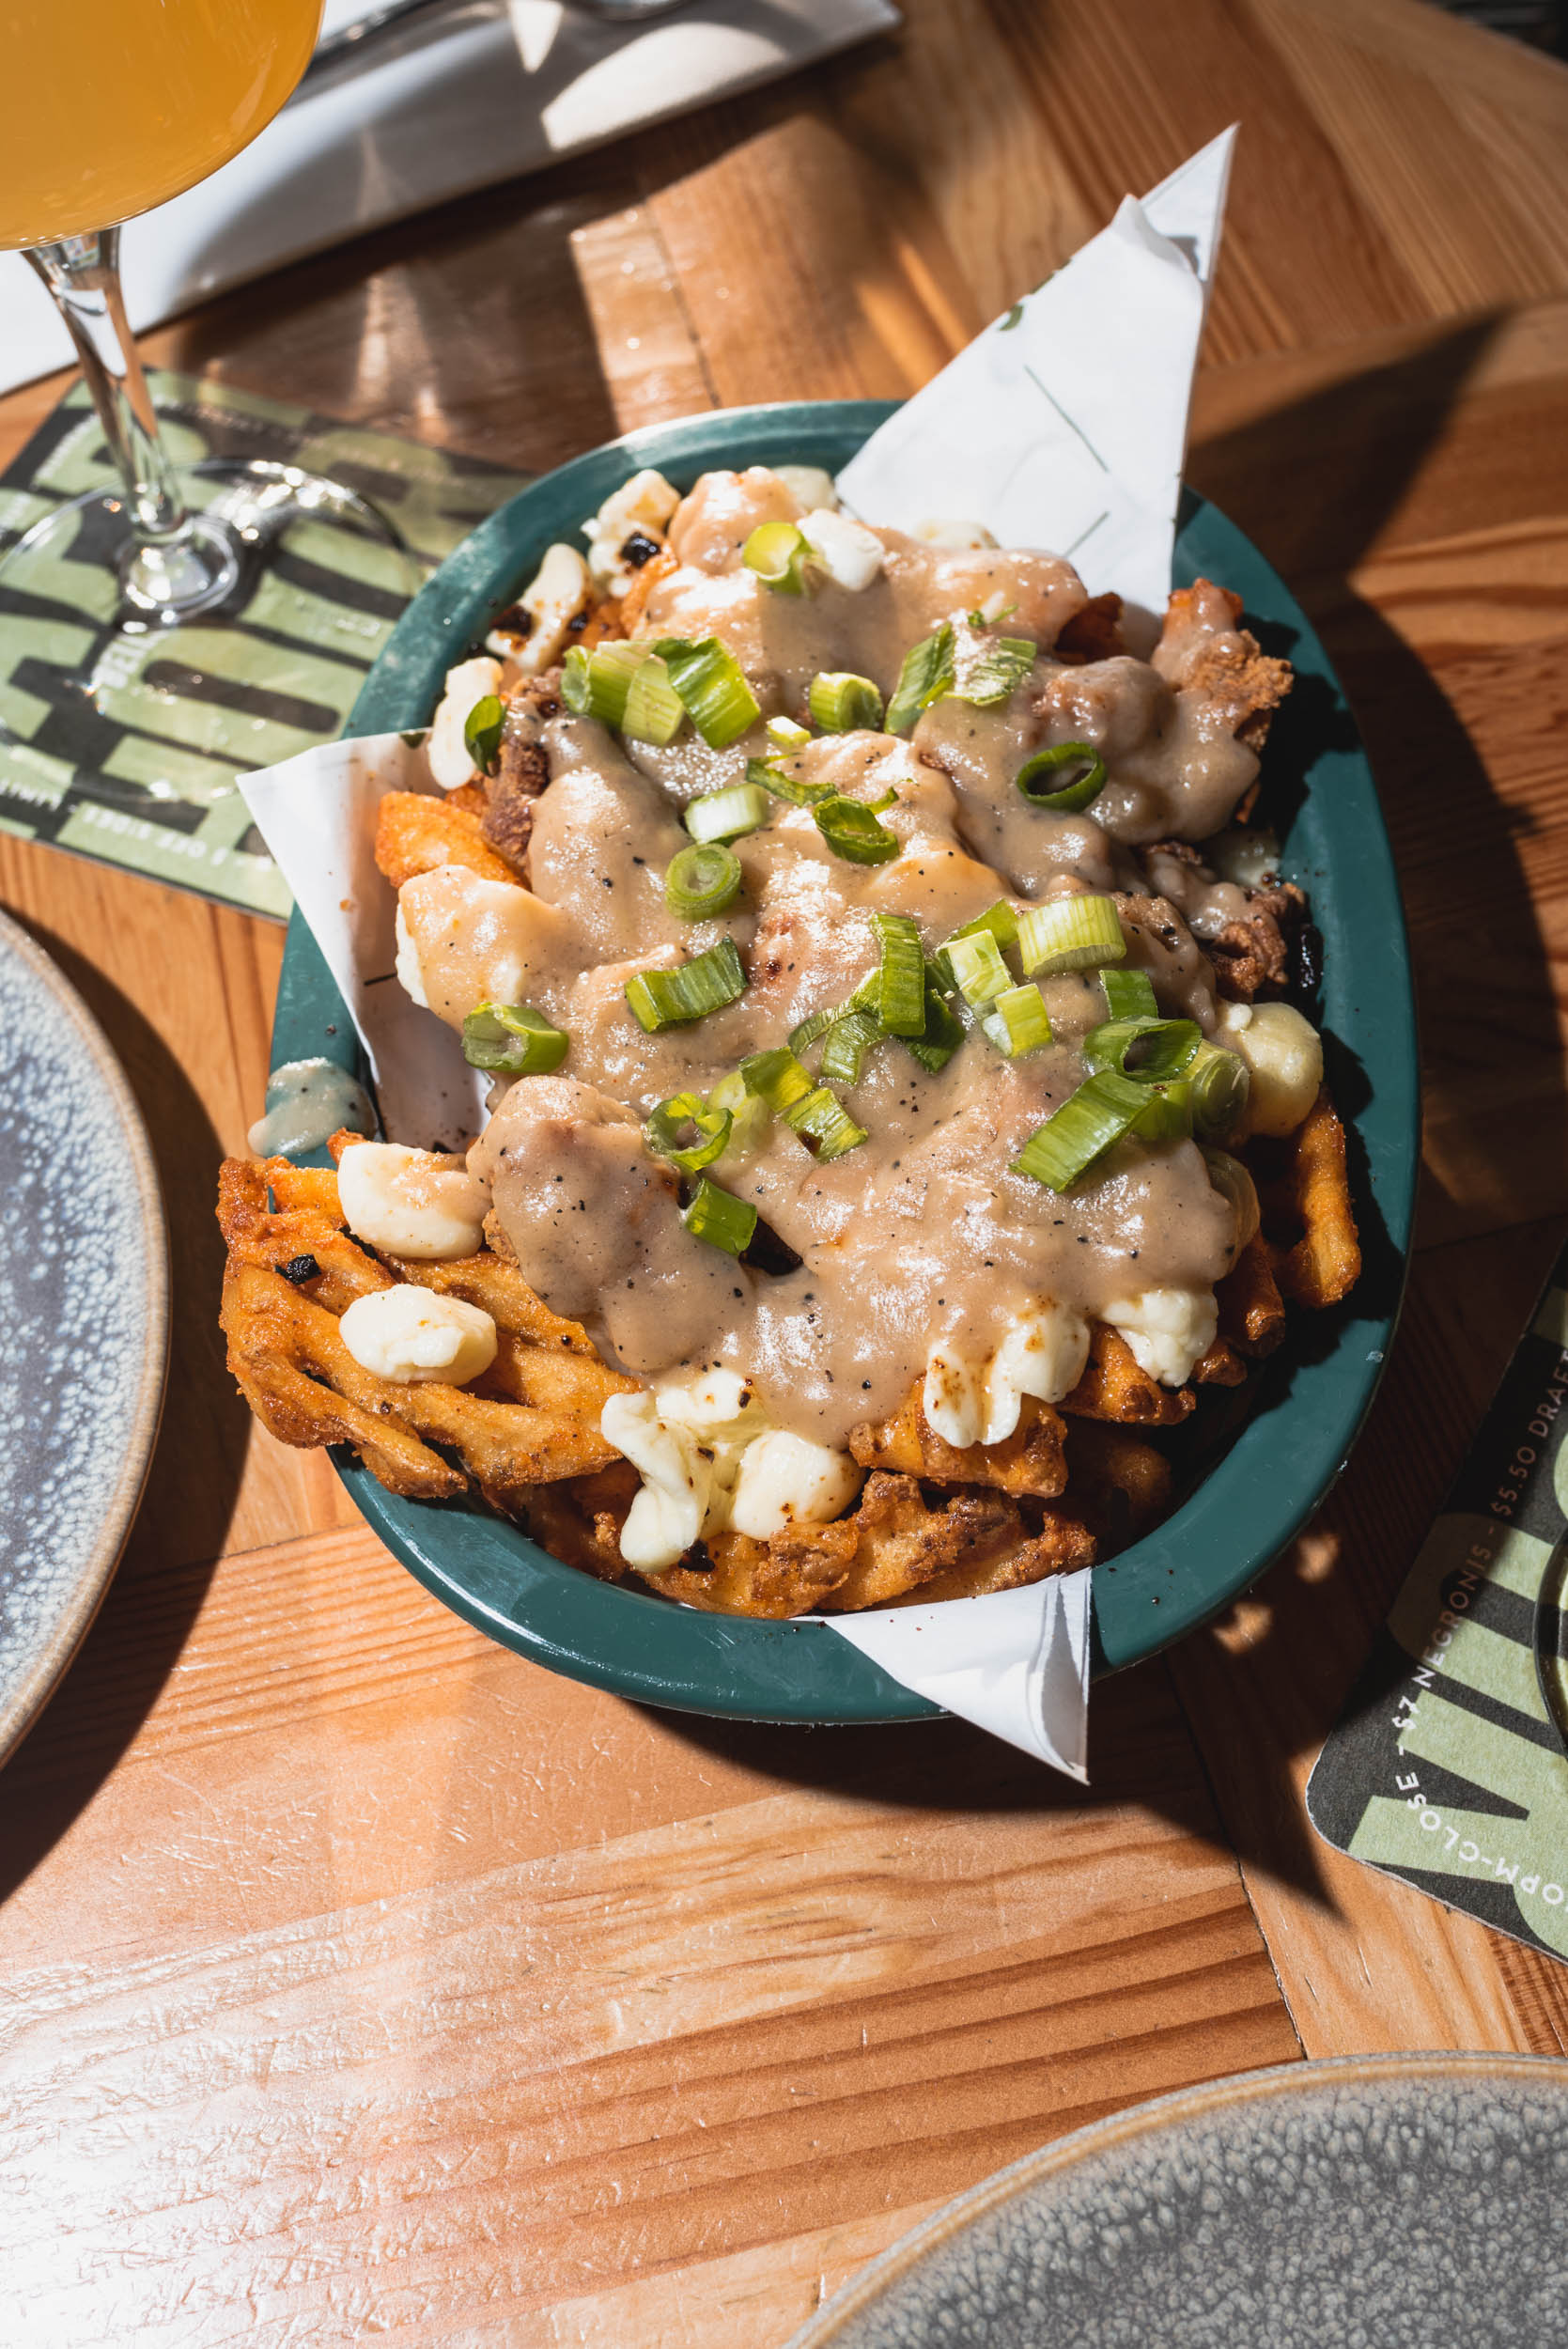 The chicken waffle poutine from Bells and Whistles.